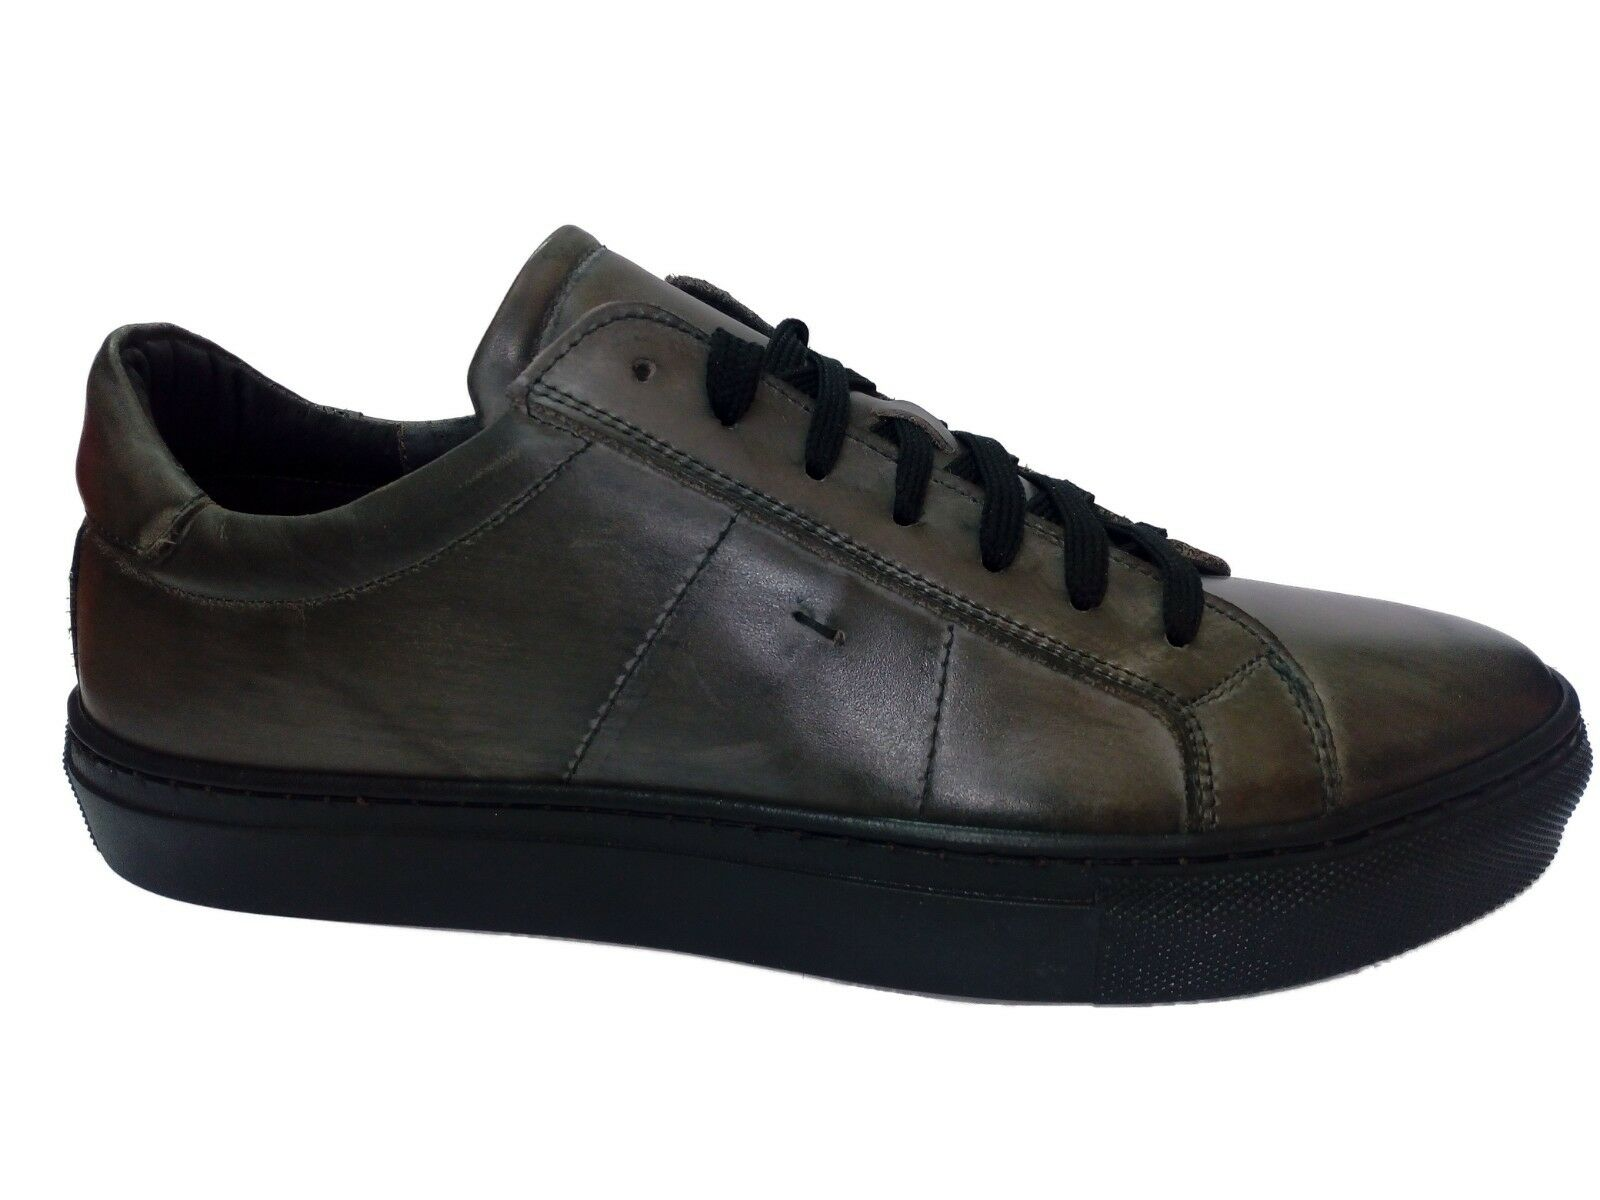 SCARPE UOMO WEENCHESTER  SNEAKERS BASSA in PELLE GRIGIO MADE in ITALY TG 40